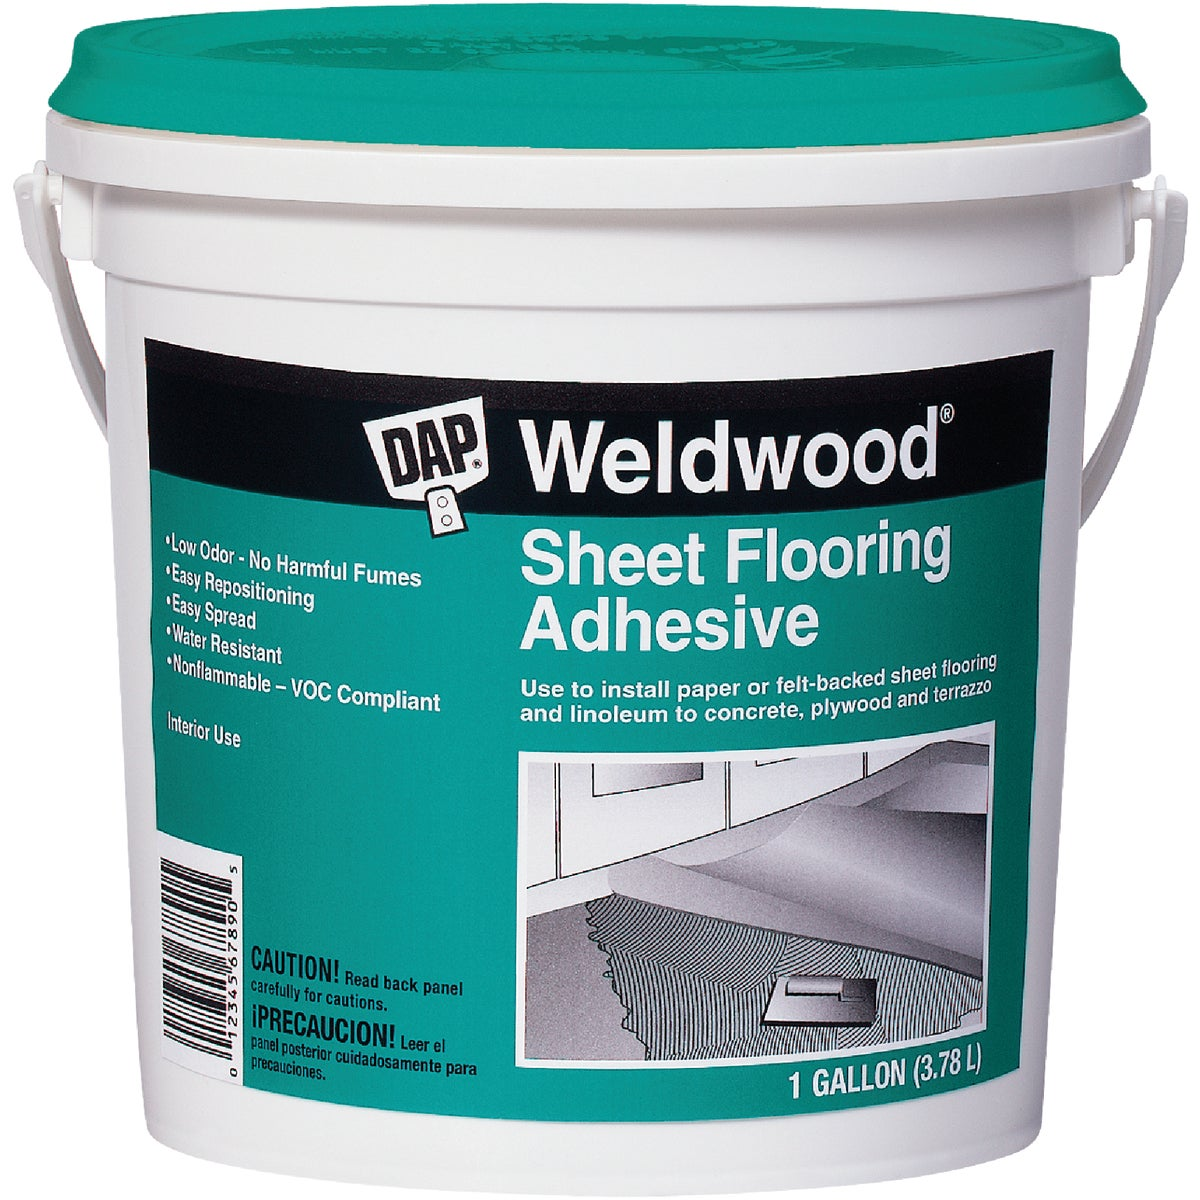 GAL SHEET FLOOR ADHESIVE